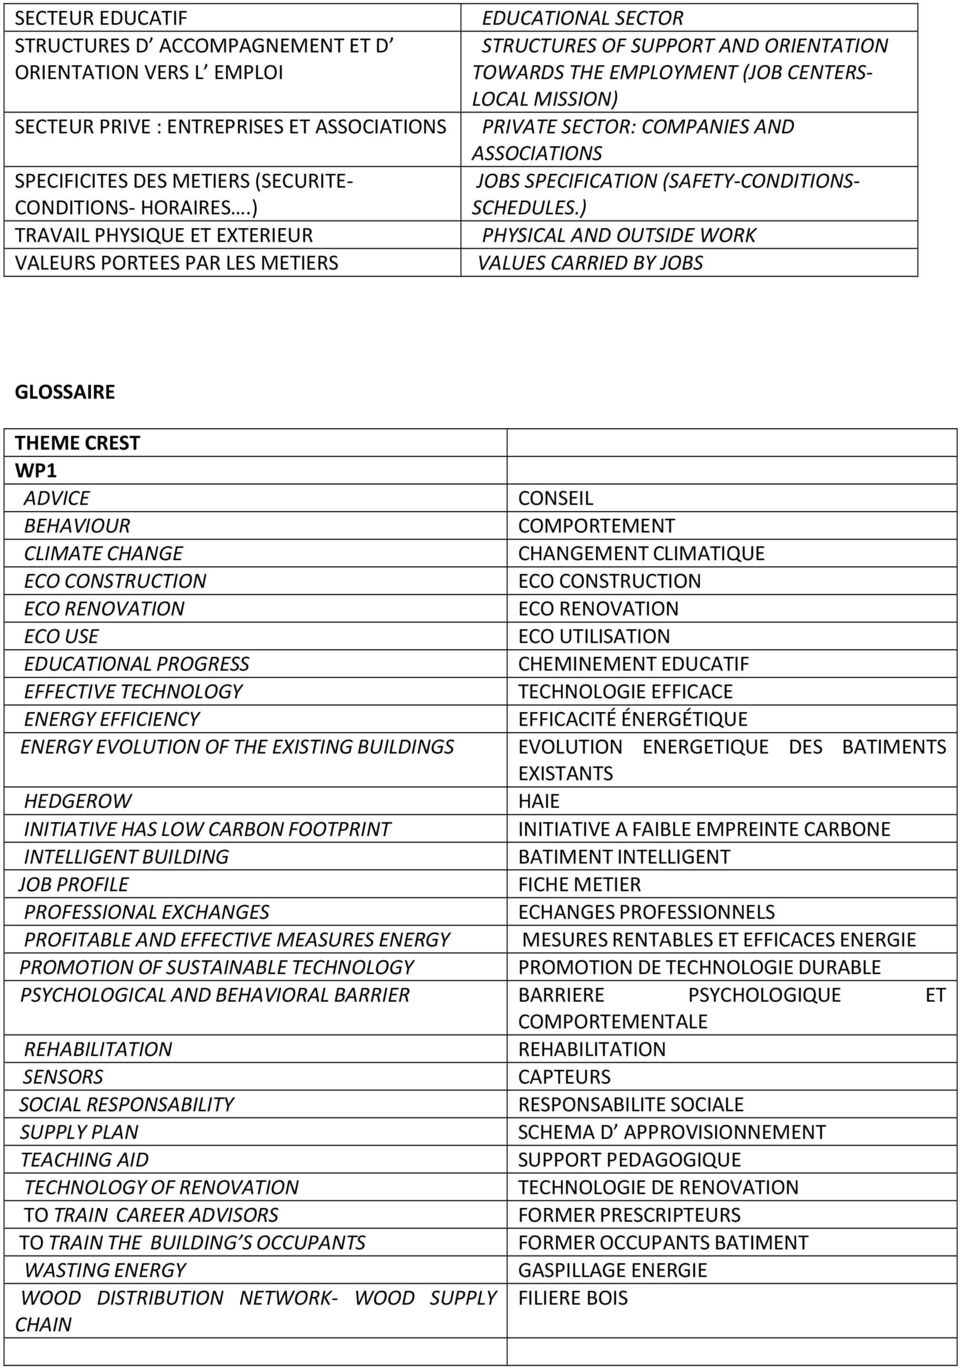 AND ASSOCIATIONS JOBS SPECIFICATION (SAFETY-CONDITIONS- SCHEDULES.